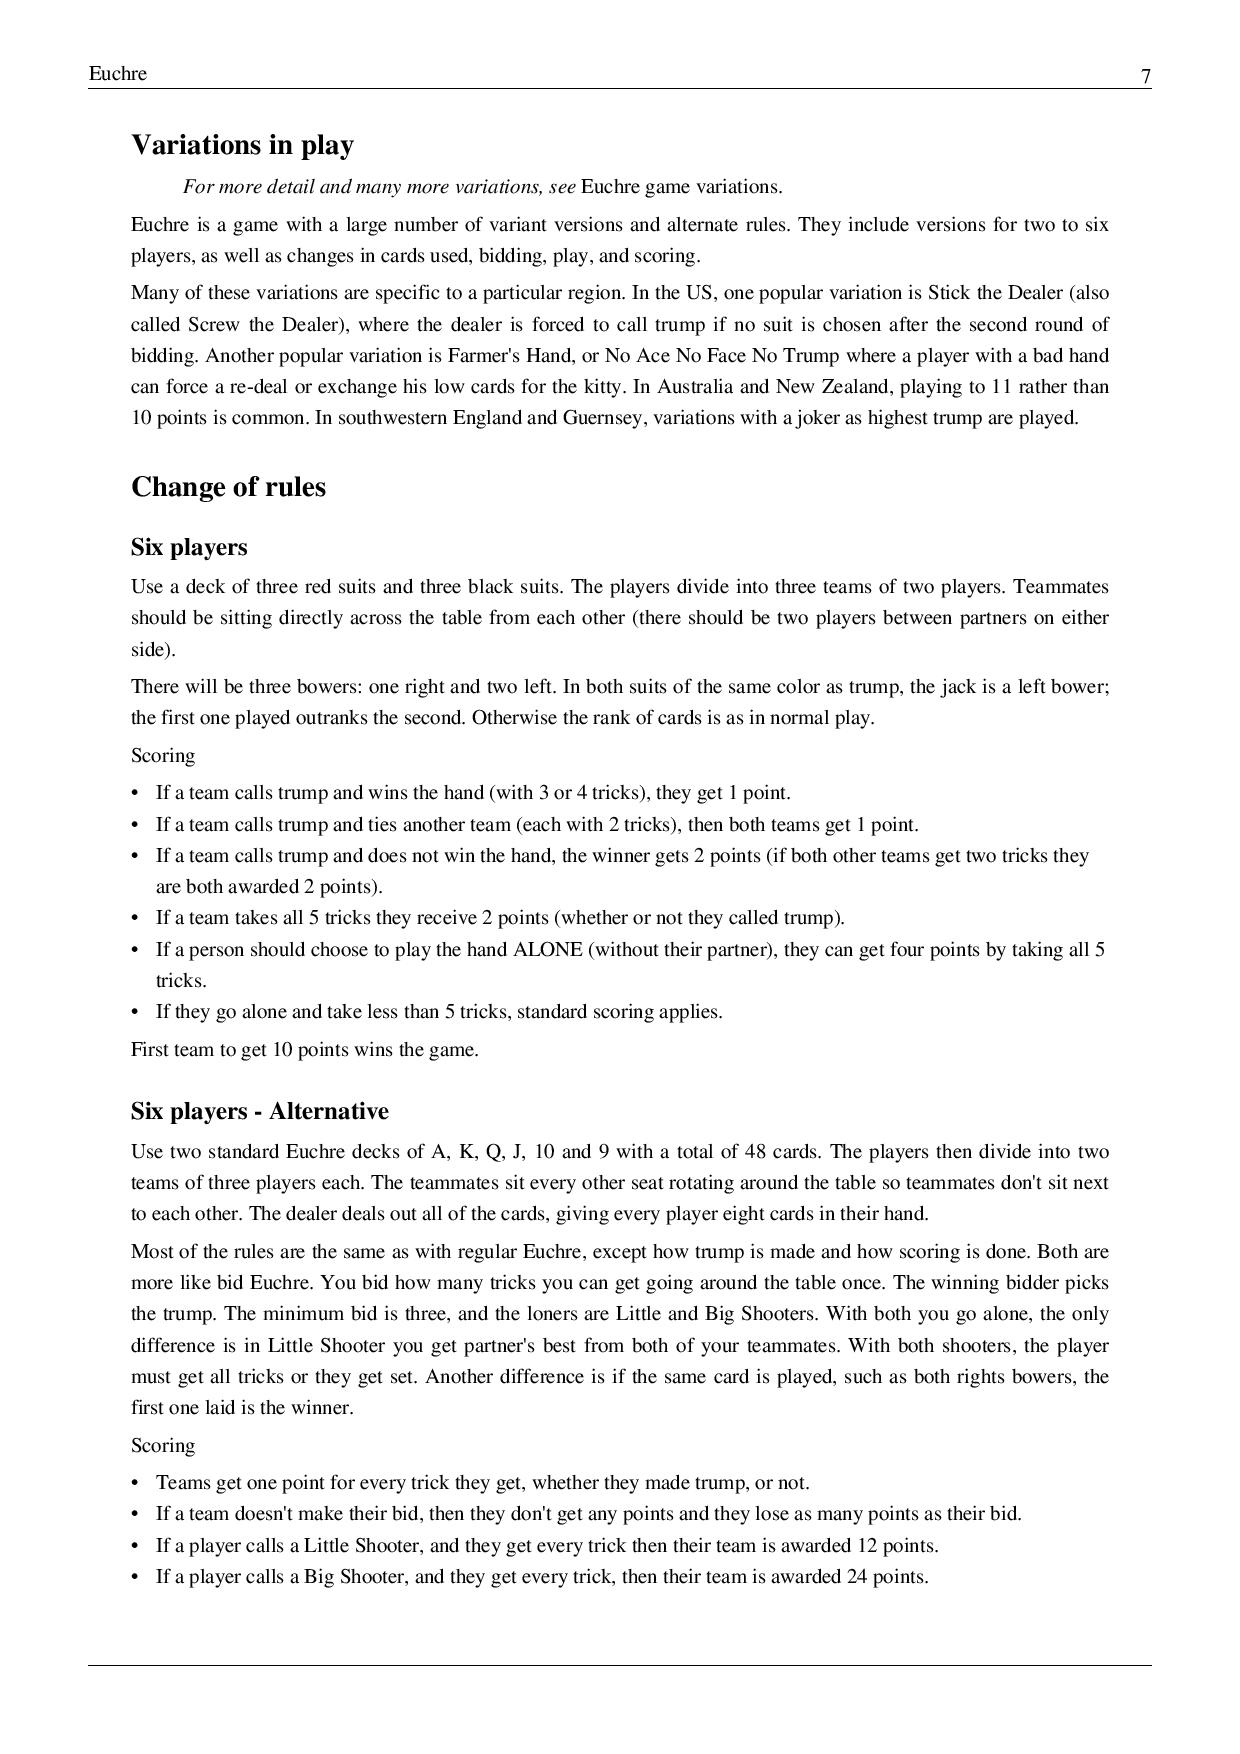 basic-euchre-rules-page-007.jpg